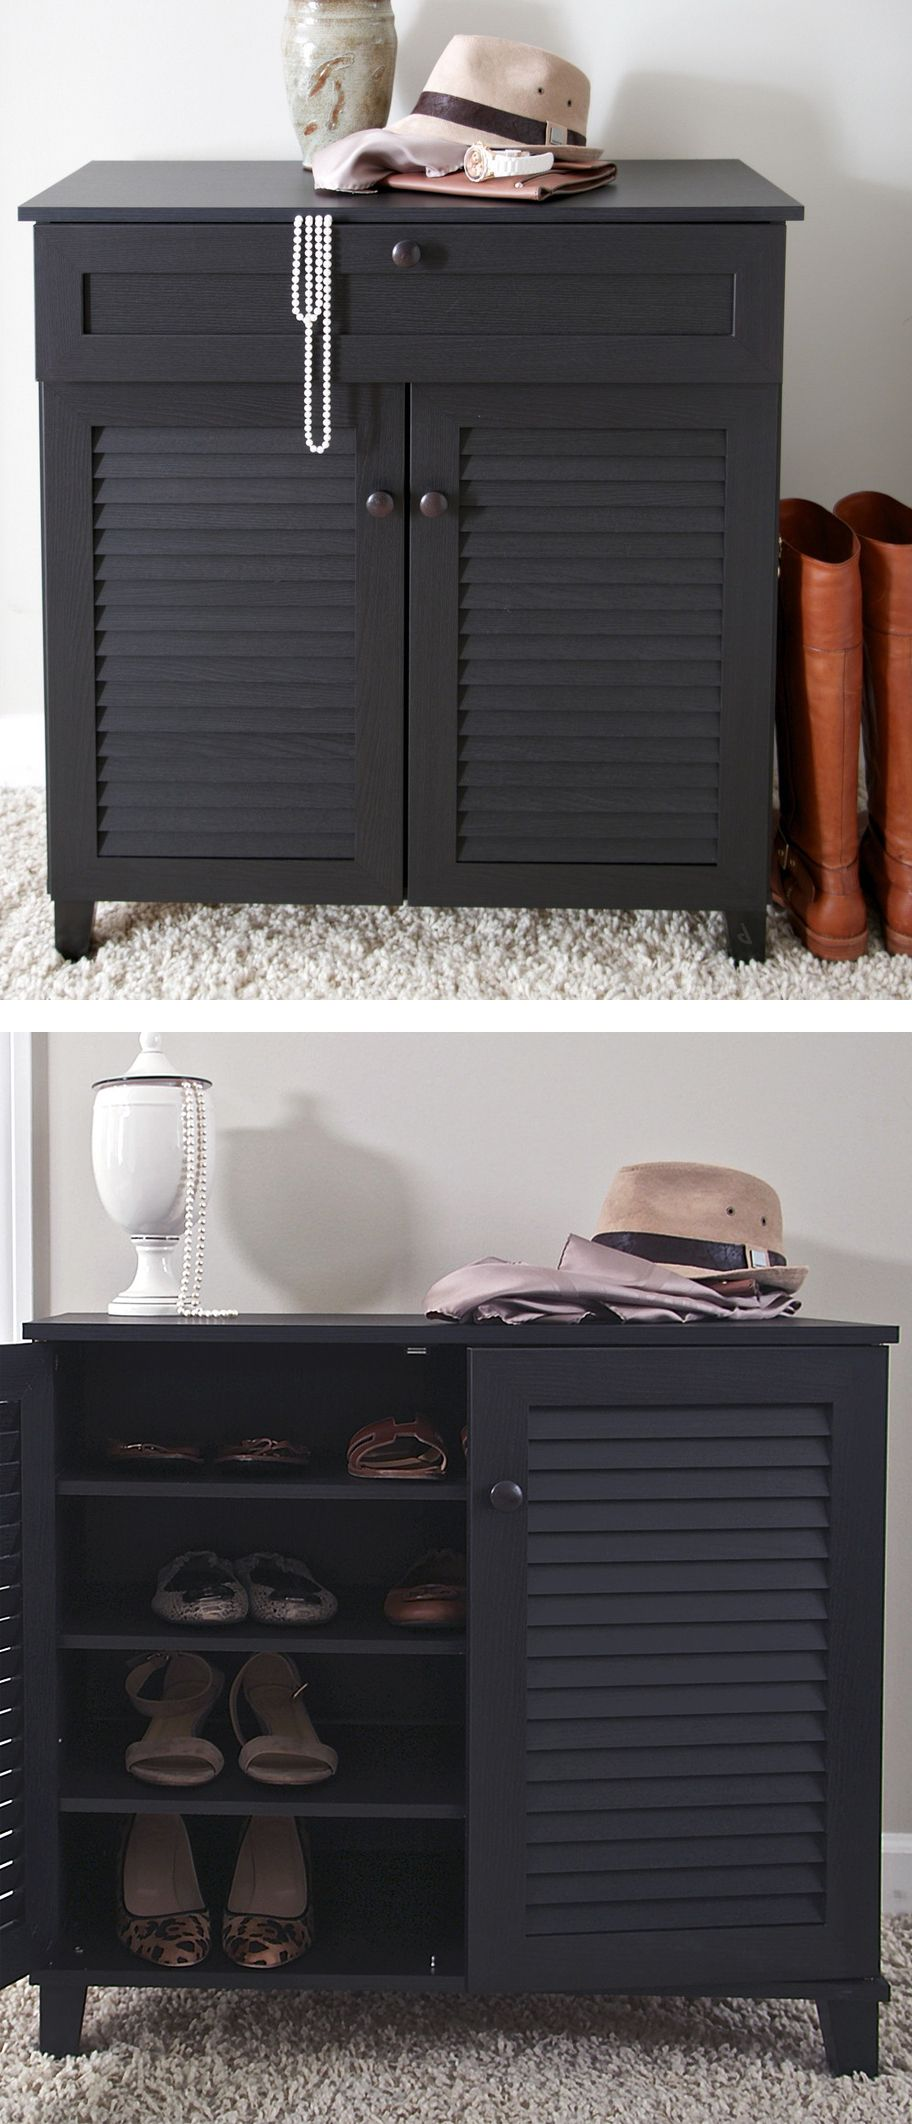 Shoe Cabinet  Great For Organization And Neatly Keeping Most Worn